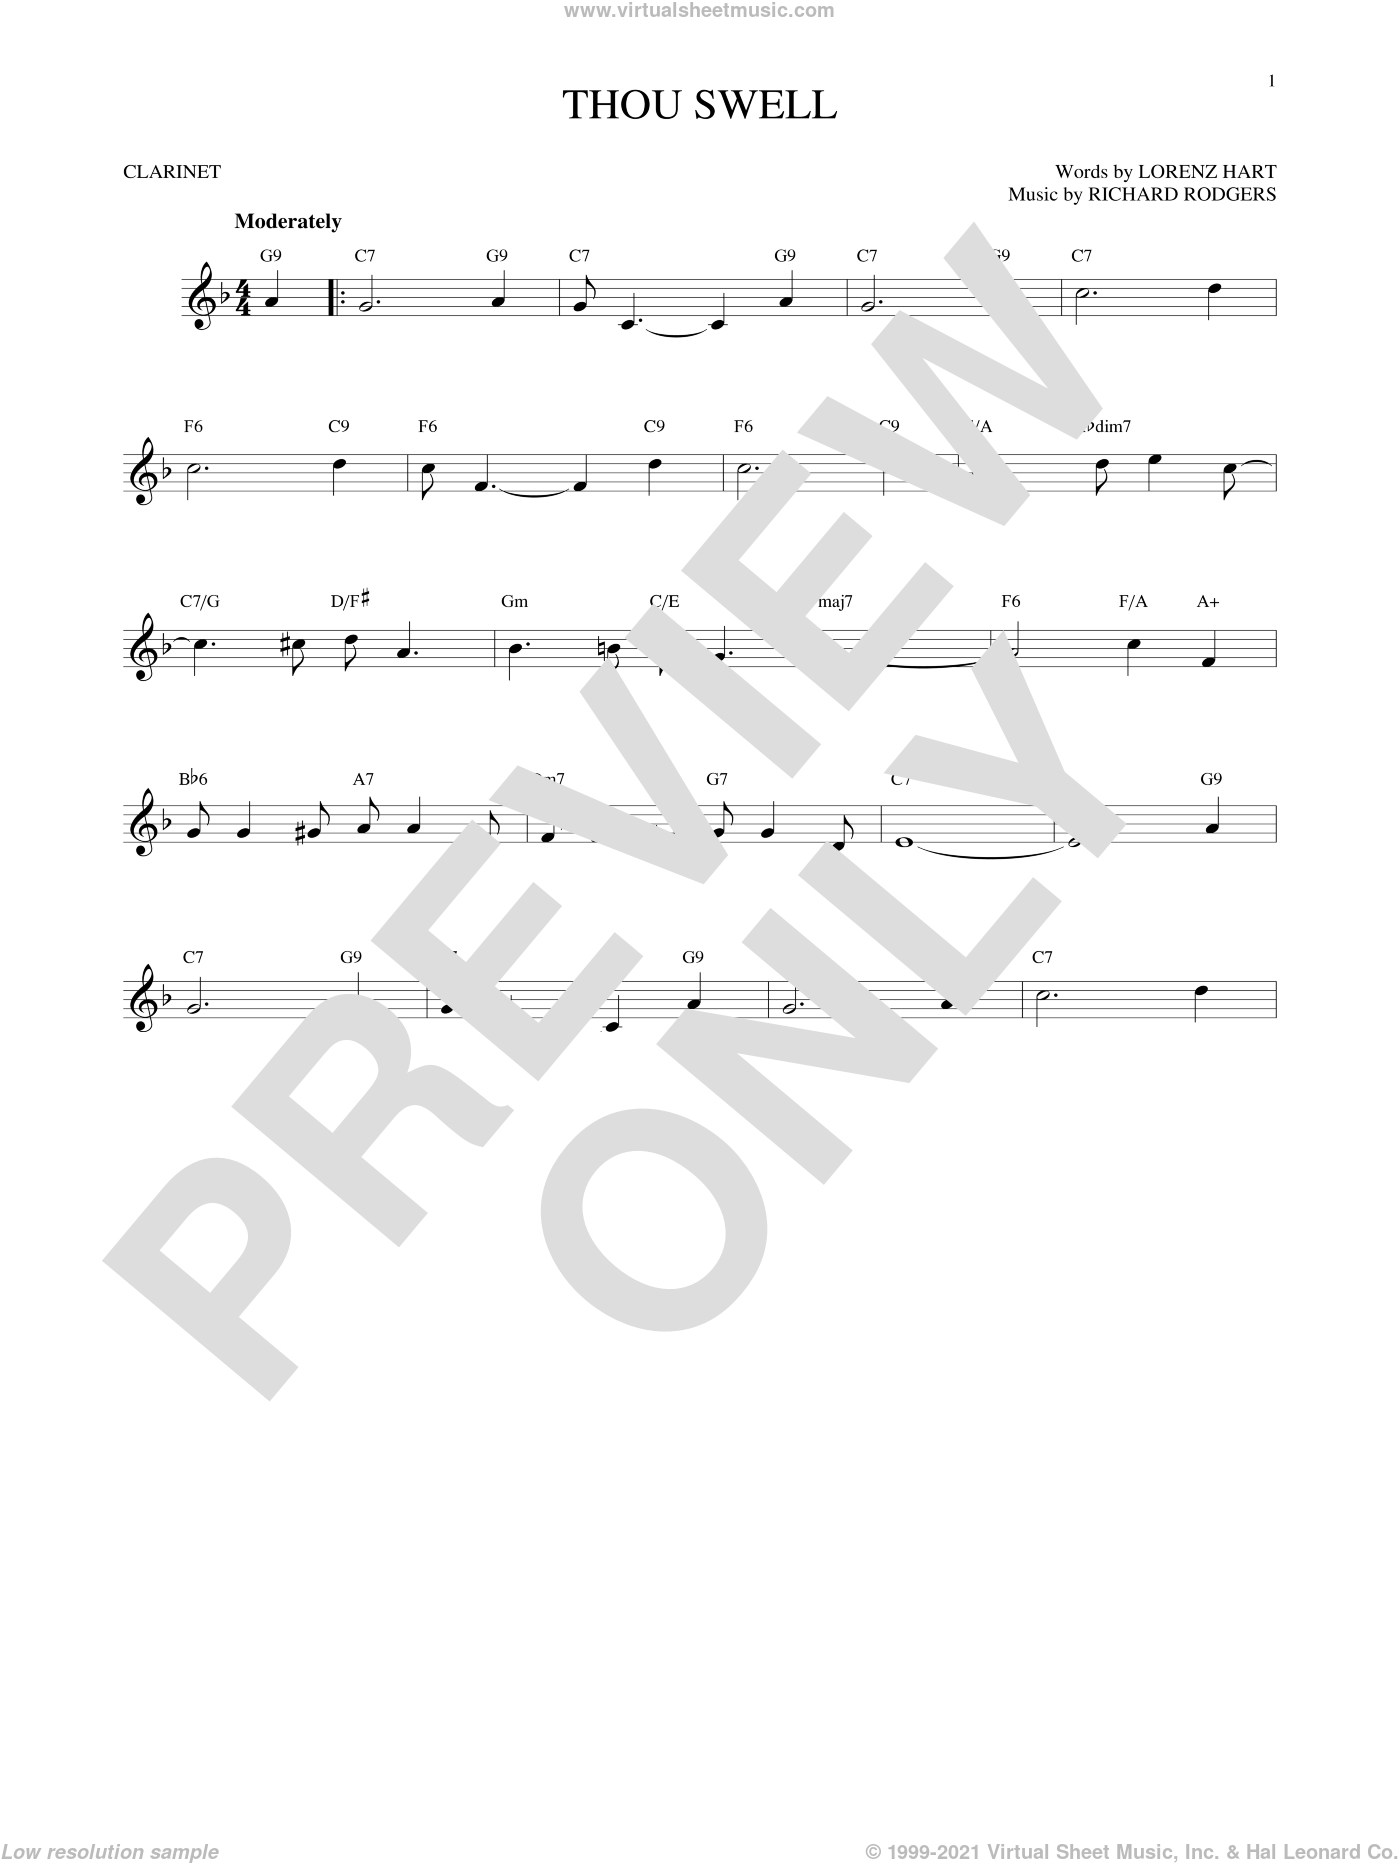 Thou Swell sheet music for clarinet solo by Rodgers & Hart, Lorenz Hart and Richard Rodgers, intermediate skill level